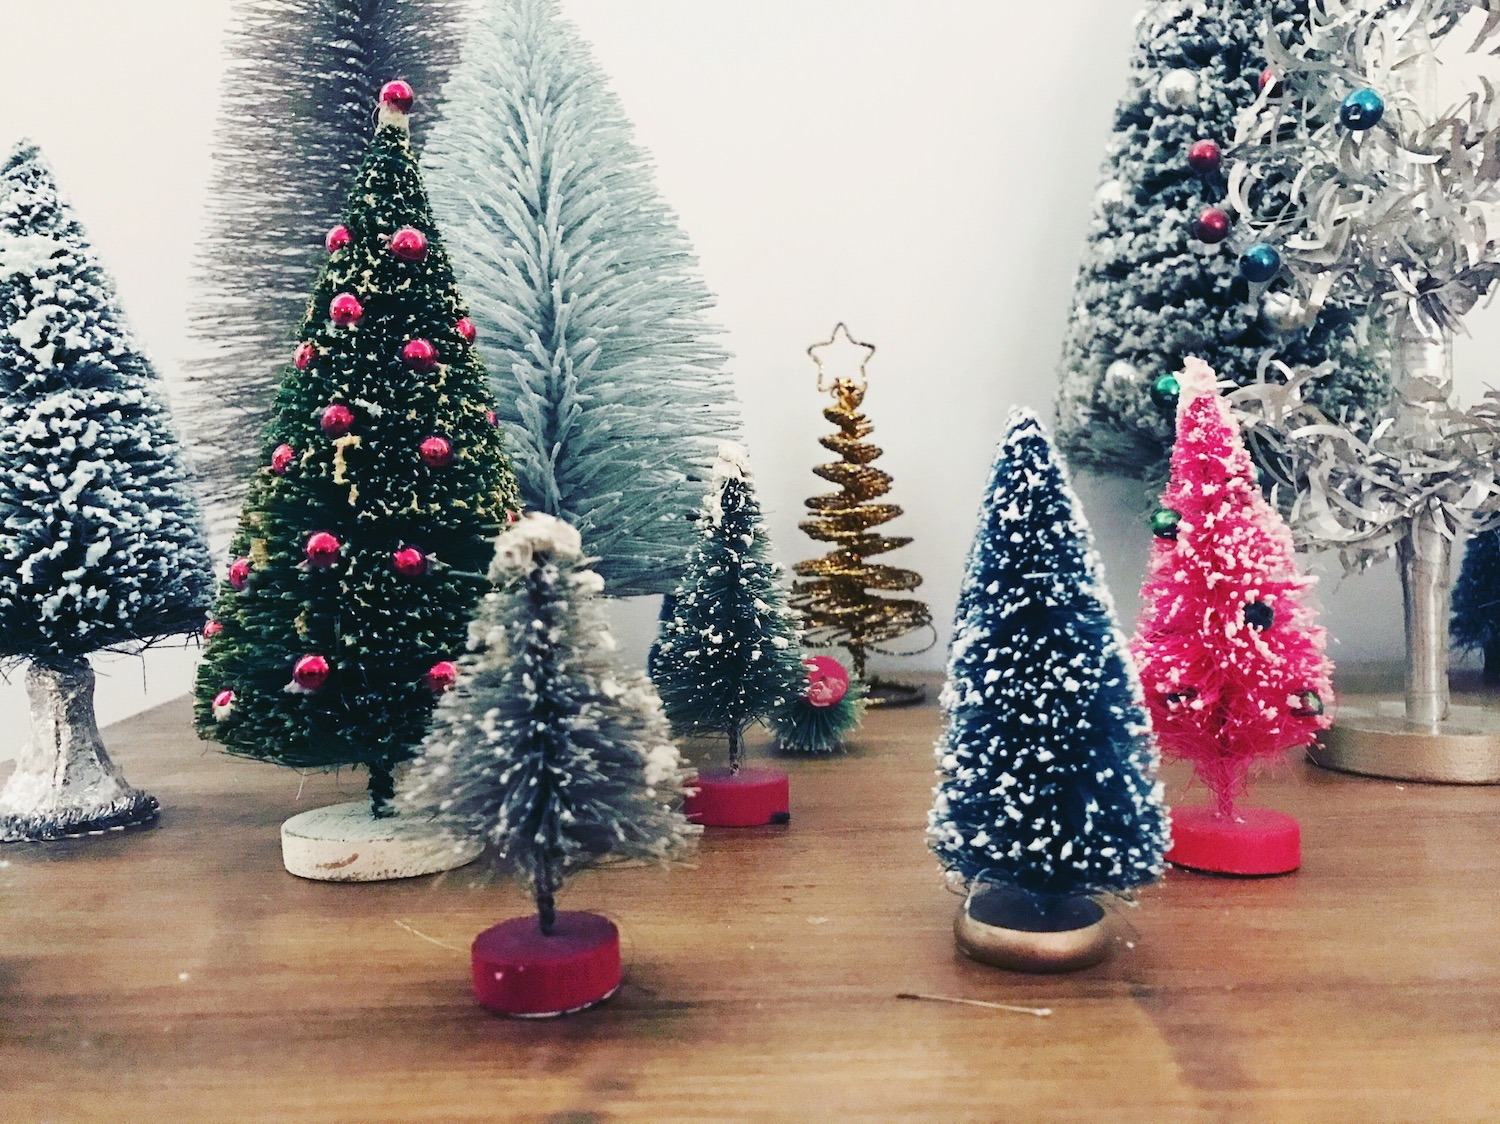 Maddie's Christmas tree collection.